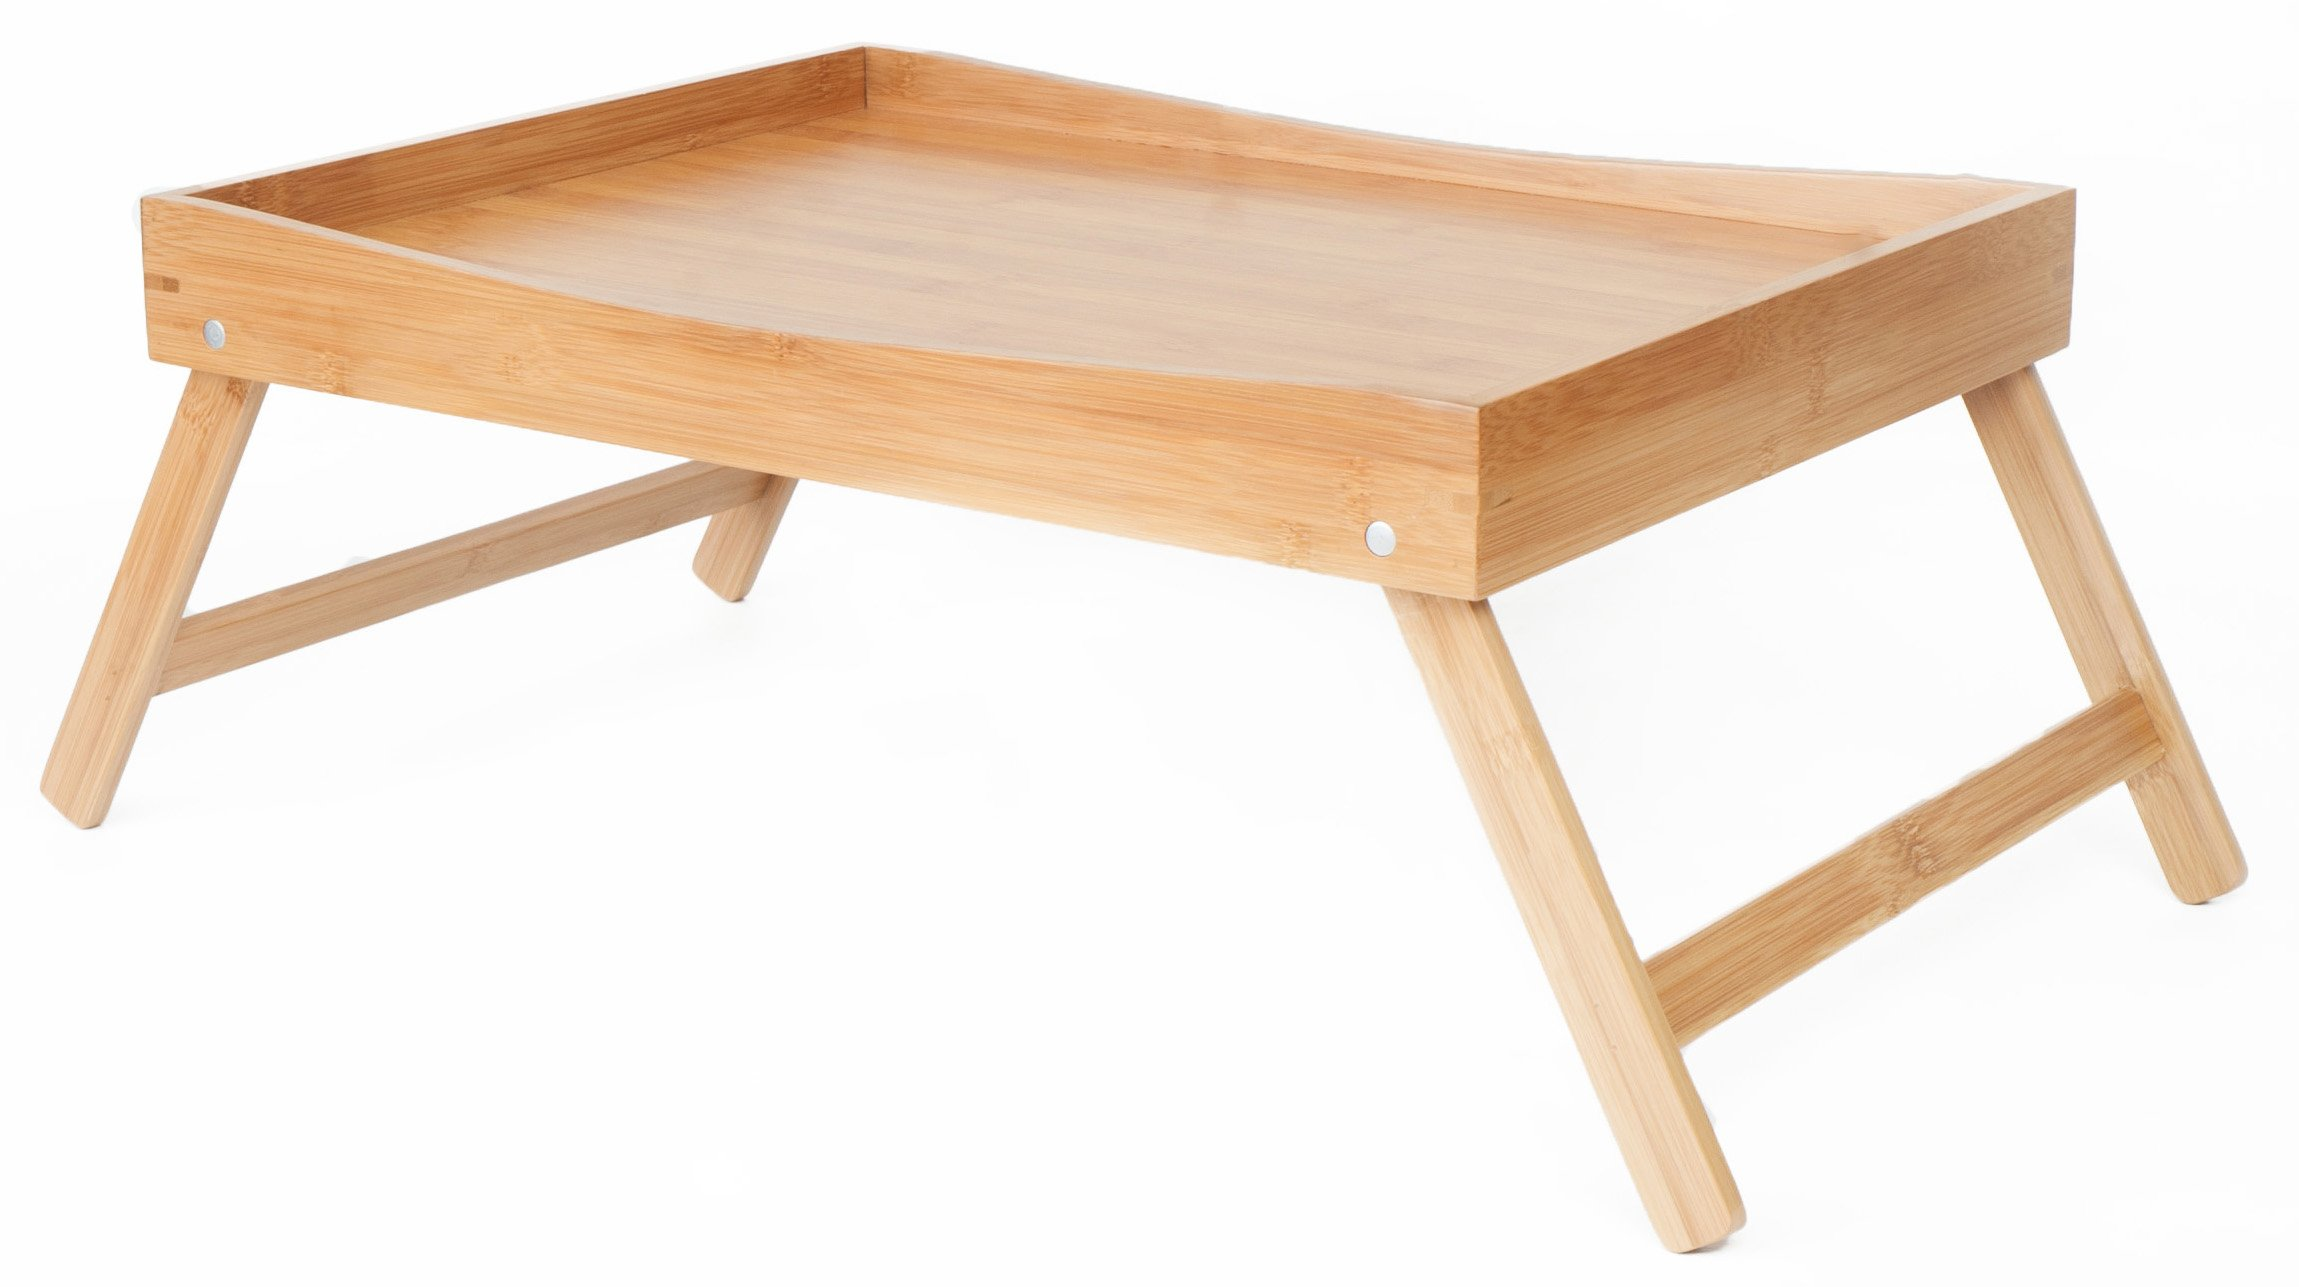 SB Trays Folding Bamboo Bed Tray: Serve breakfast in bed or use as a TV table, laptop computer tray or serving platter